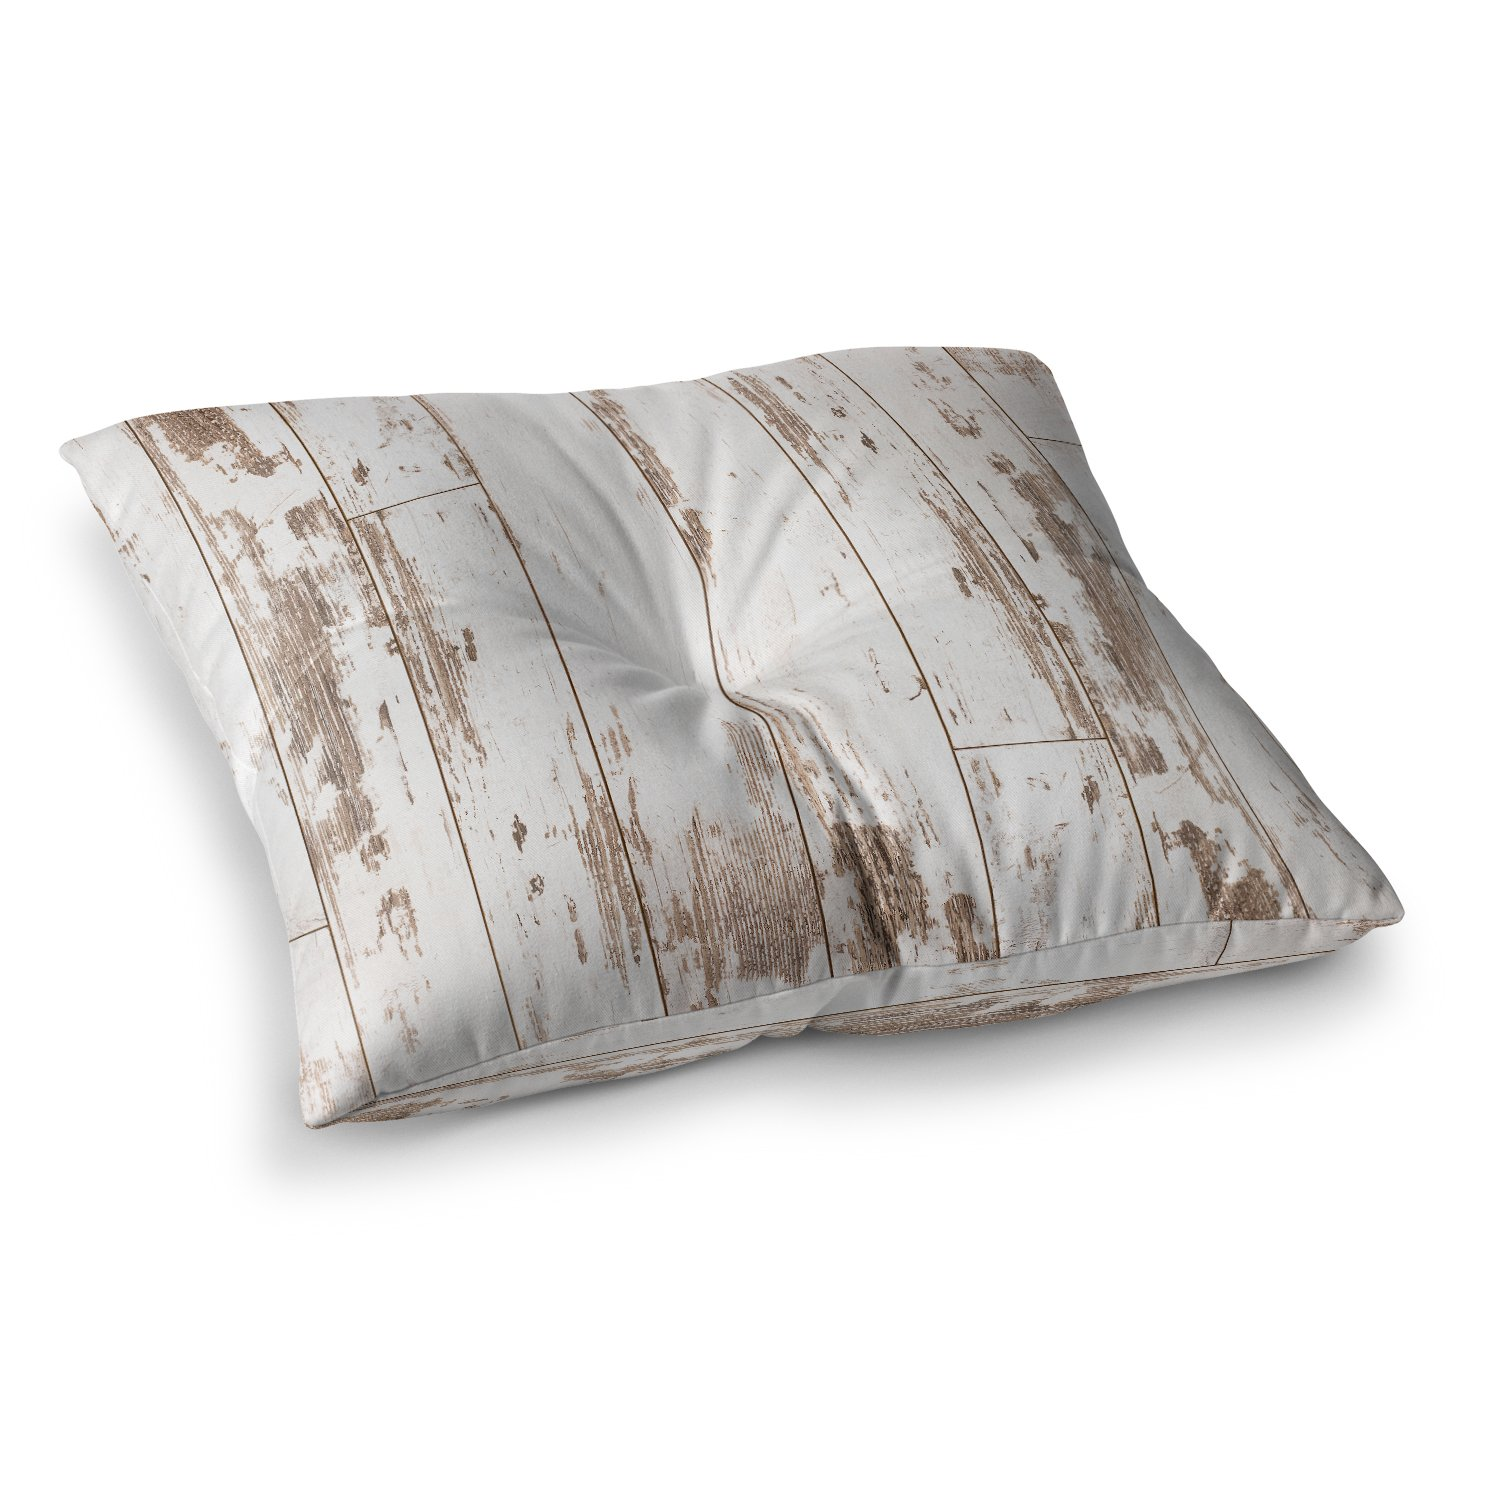 KESS InHouse Susan Sanders Barn Weathered Wood White Beige Photography Square Floor Pillow x 26''